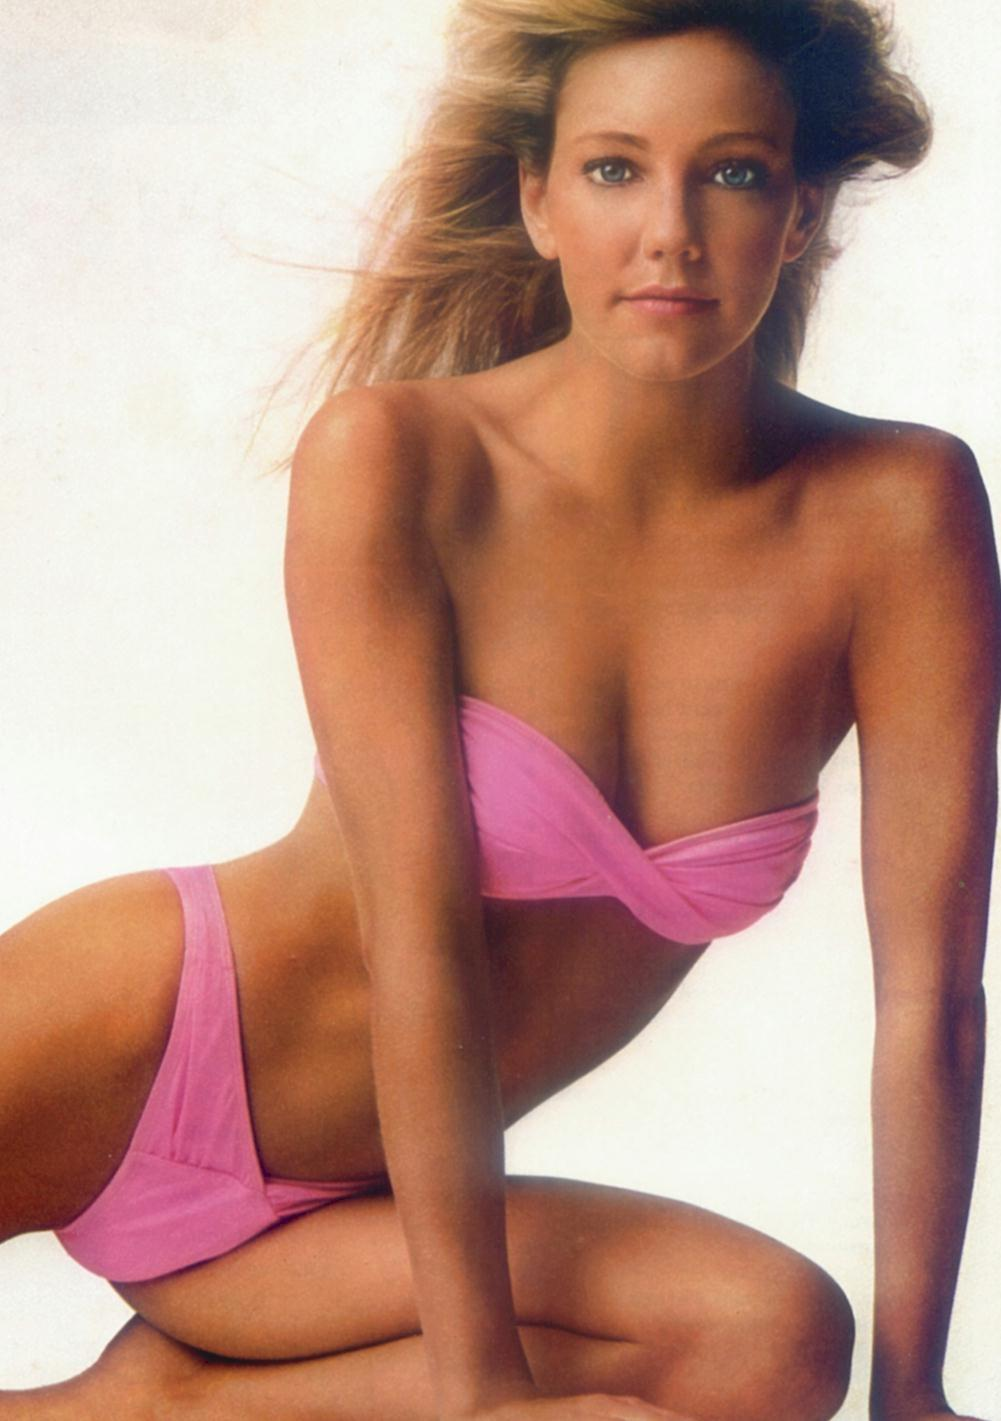 heather-locklear-pink-bikini-tv-731611409.jpg